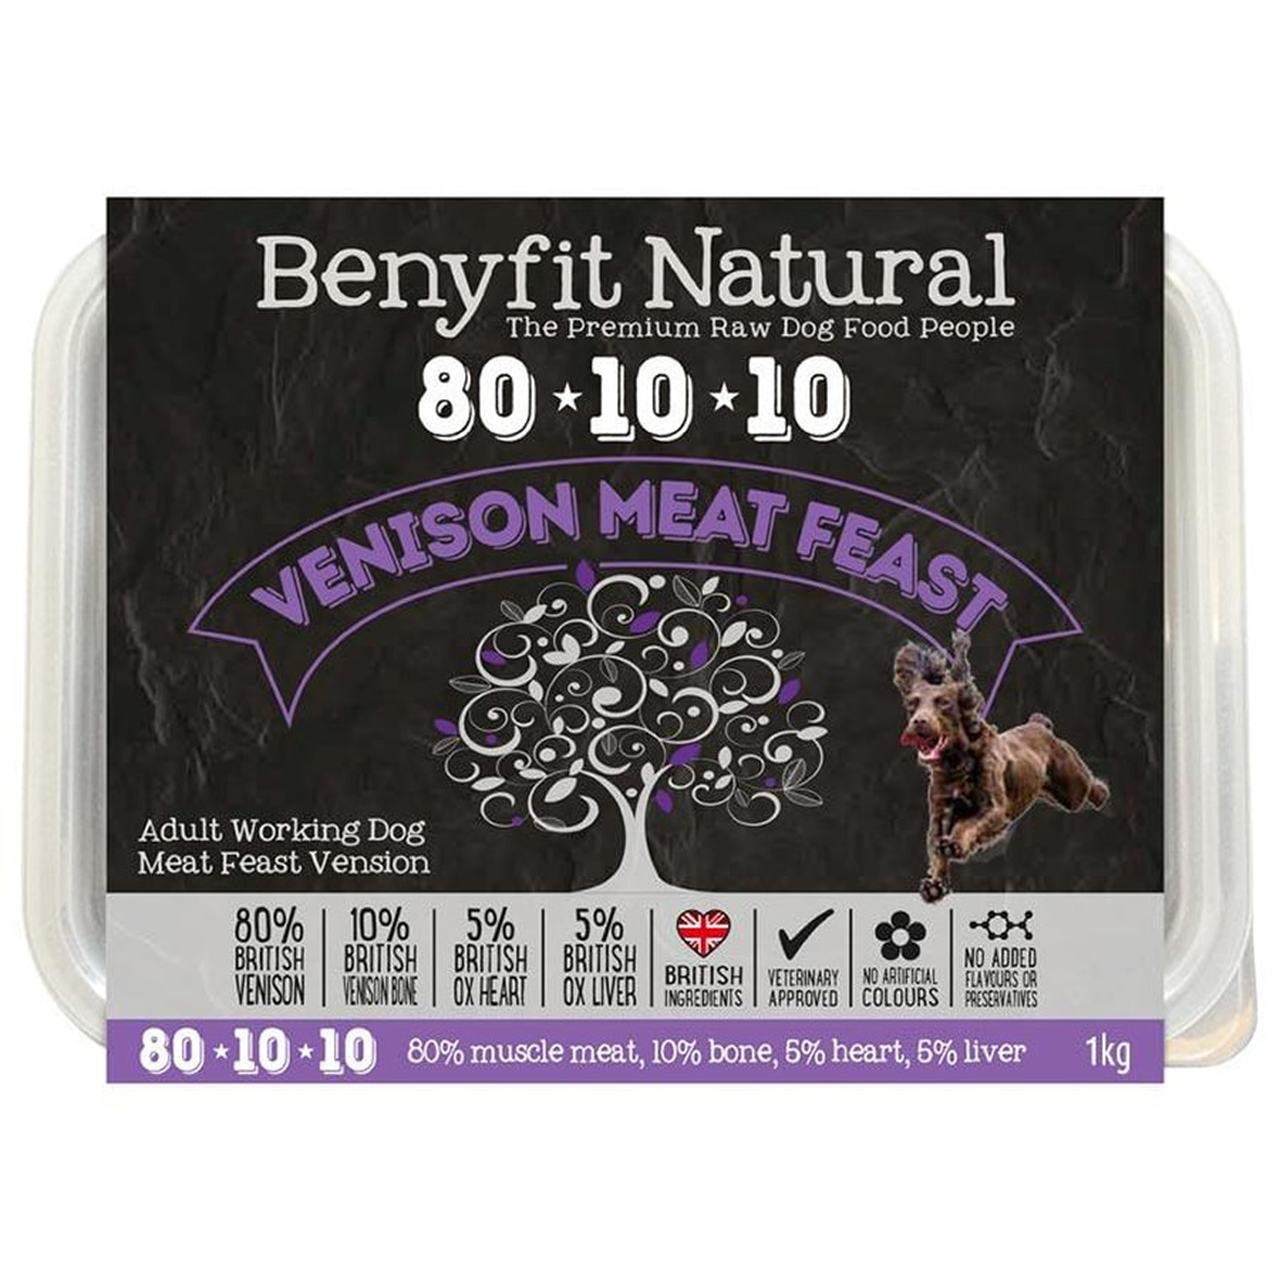 Benyfit Natural 80*10*10 Venison Meat Feast Adult Raw Working Dog Food